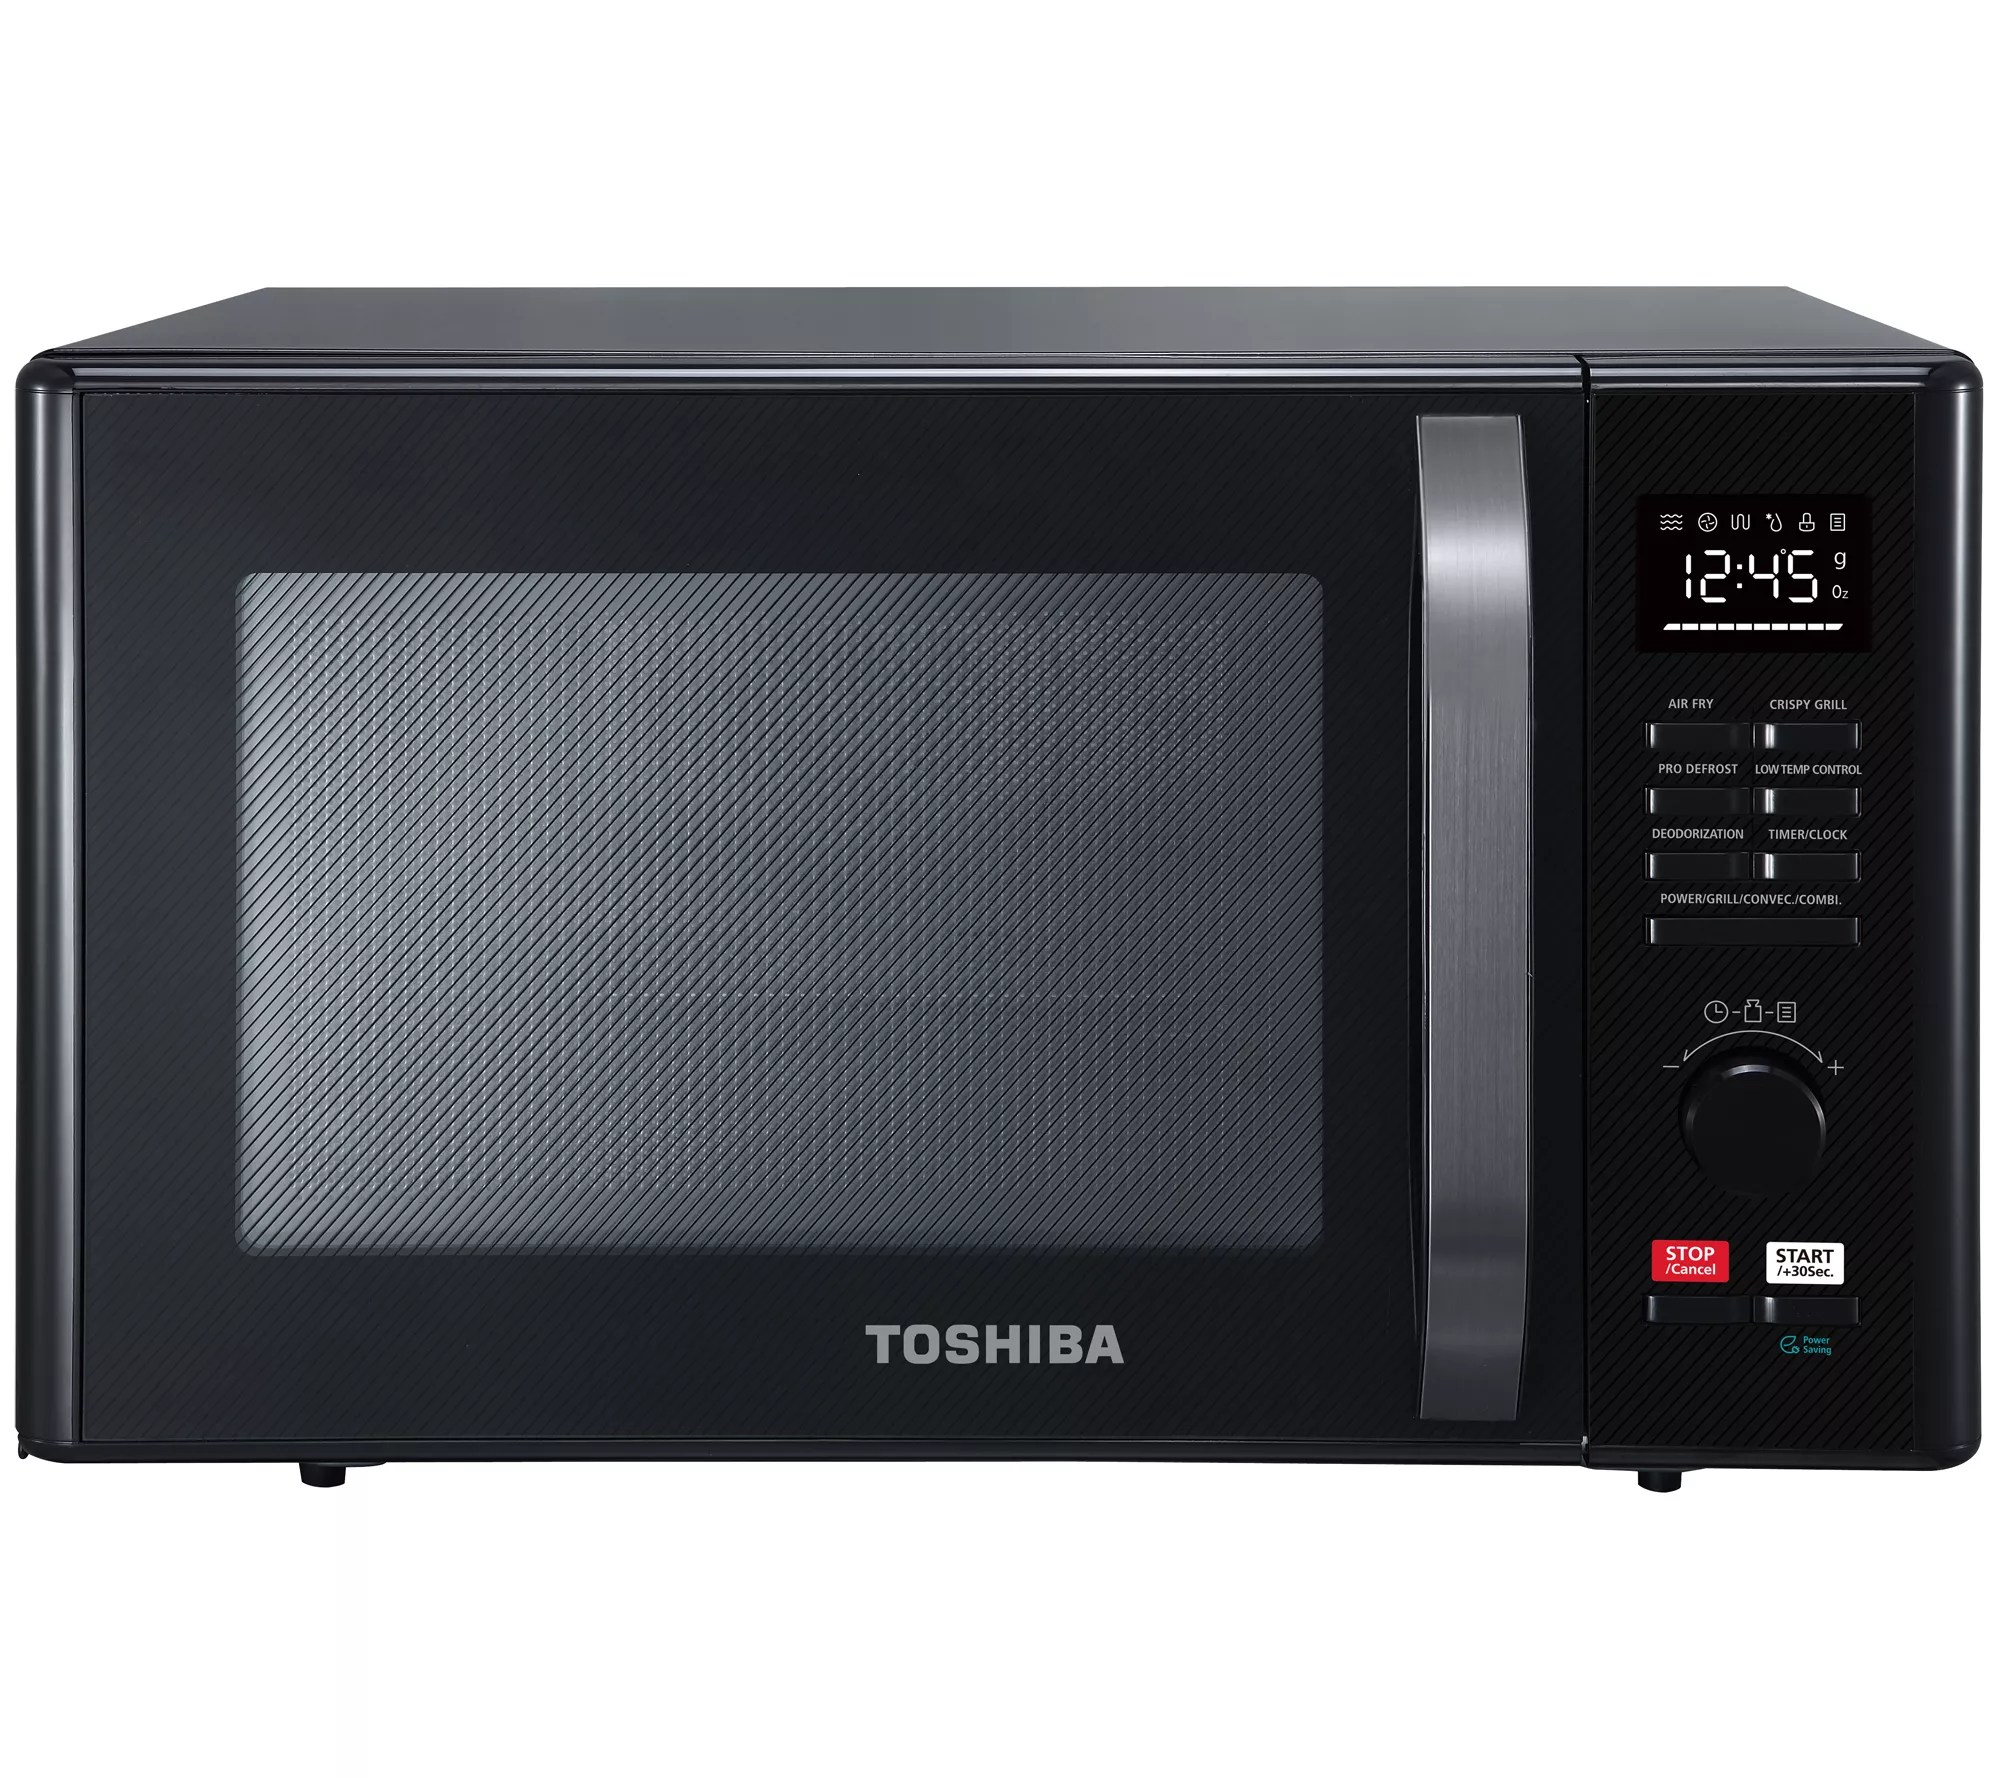 toshiba 1 0 cu ft 6 in 1 multifunctional microwave air fryer qvc com